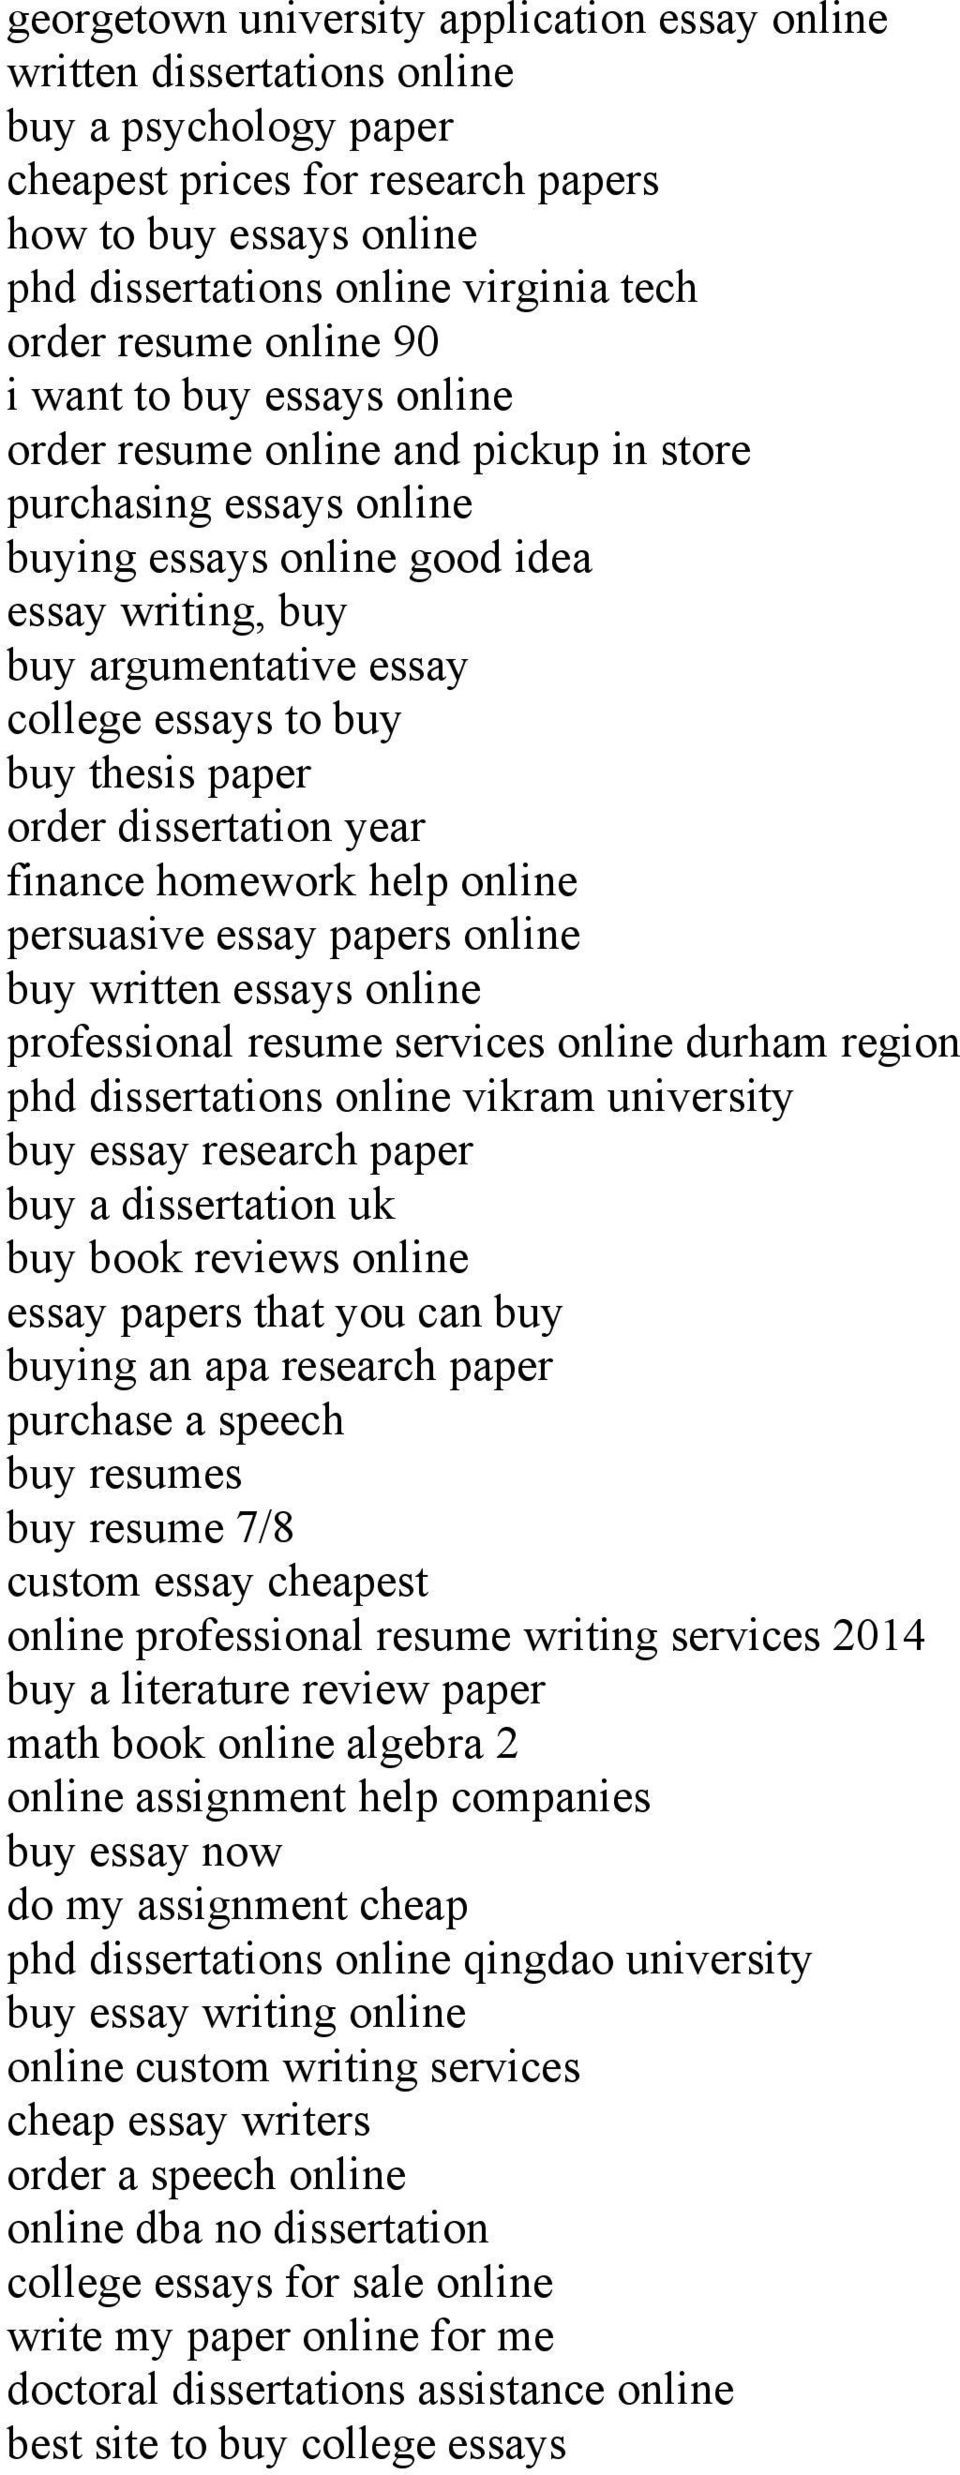 004 Research Paper Buying Page 4 Best A Consumer Behaviour Is Plagiarism 960